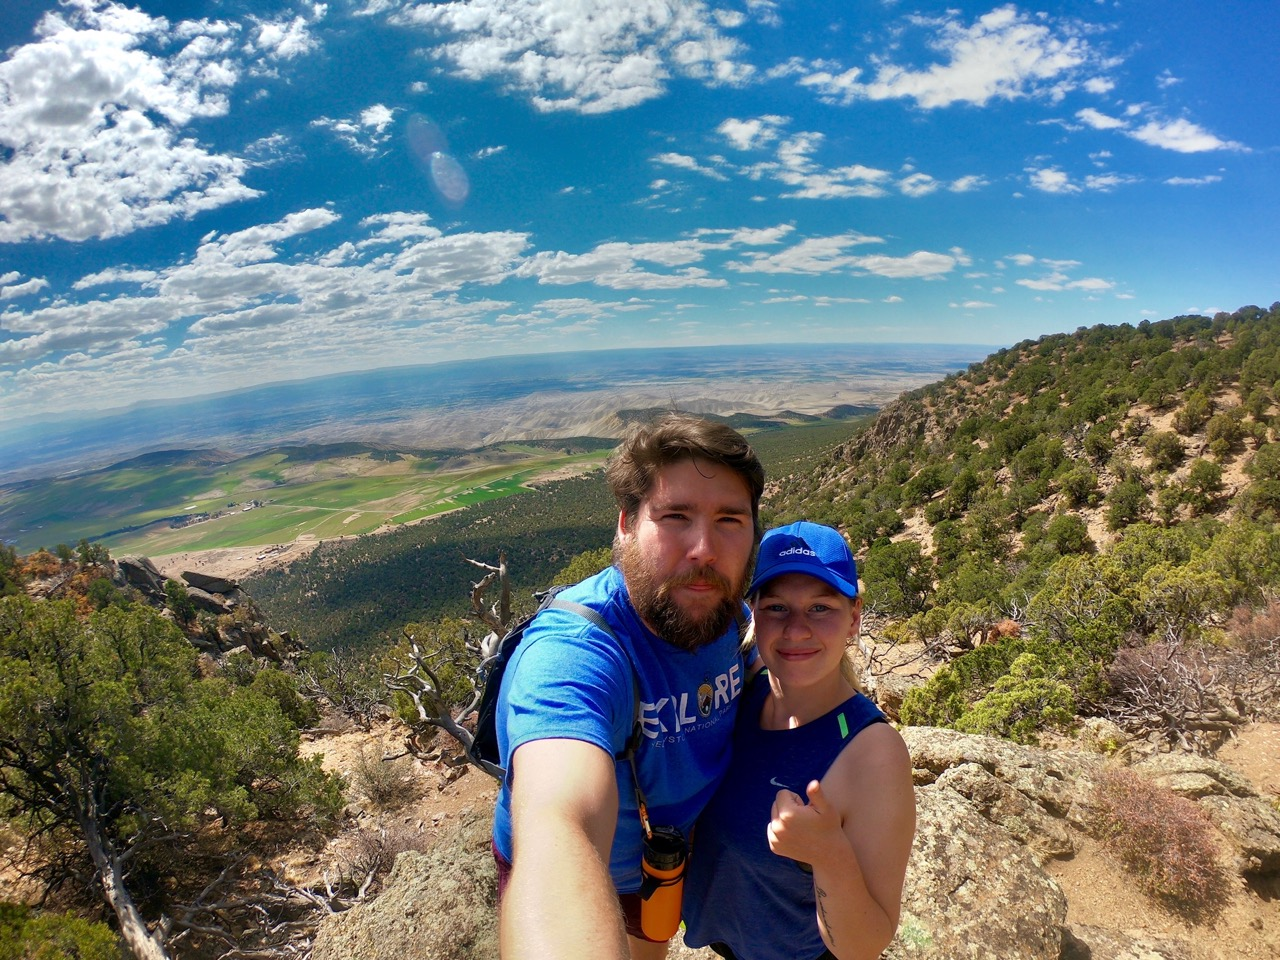 Black Canyon of the Gunnison Hike